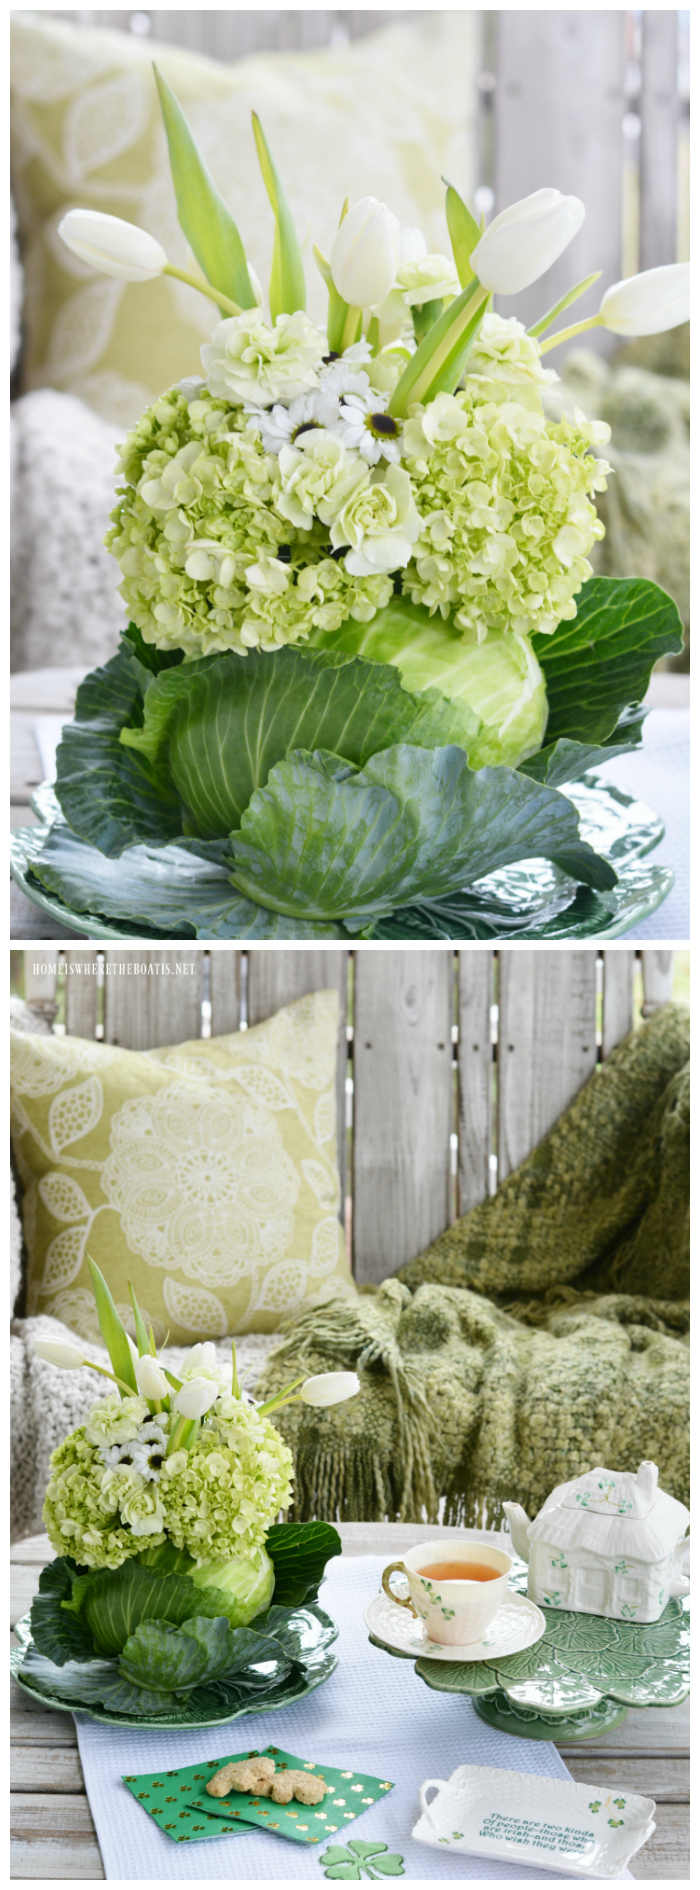 Create a flower arrangement and vase using a cabbage for spring or your St. Patrick's Day celebration! Tutorial includes flower arrangement longevity tips and additional floral inspiration.